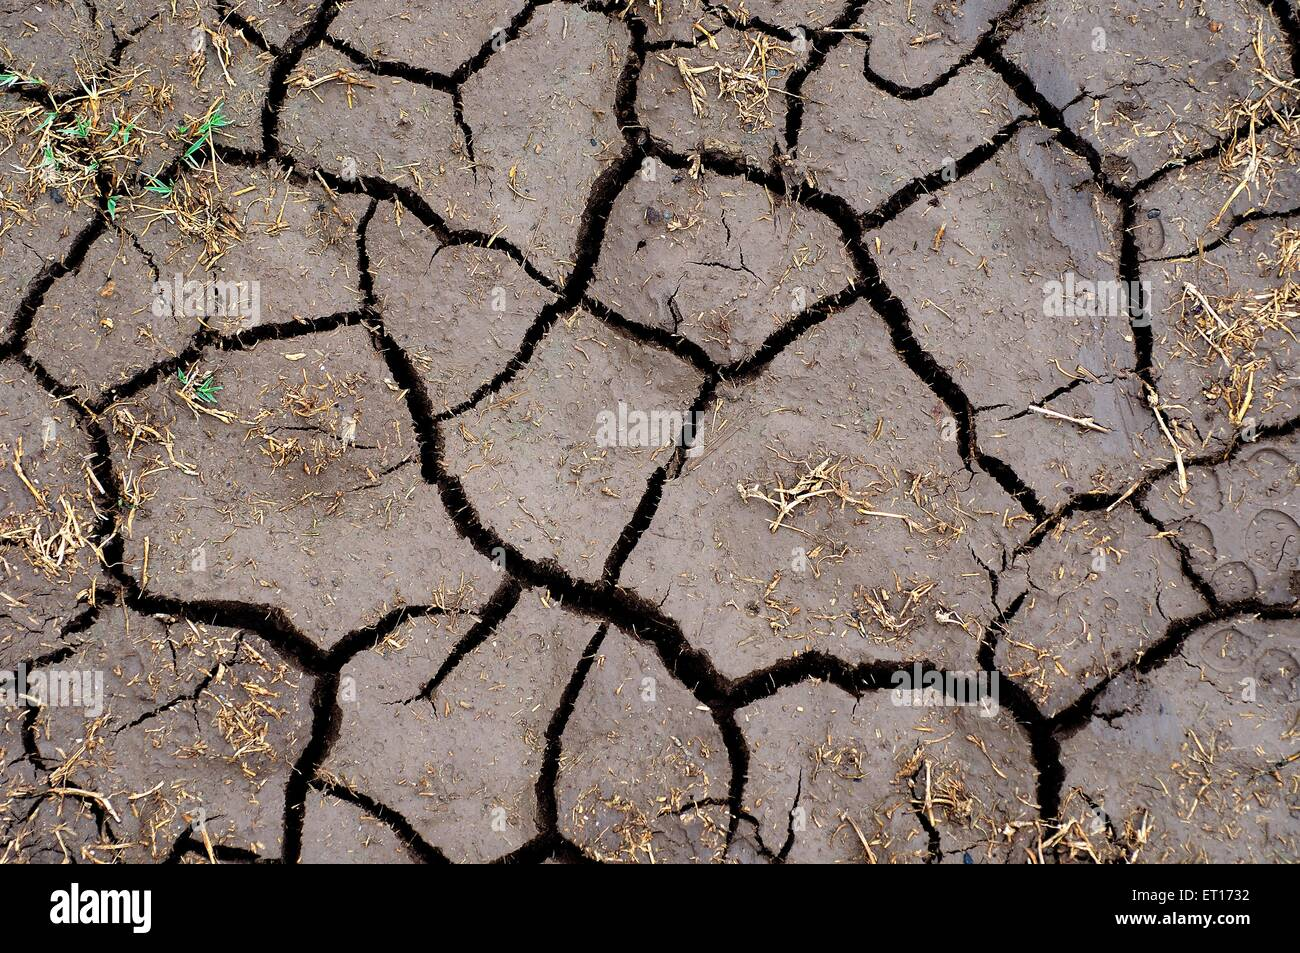 Drought ; dry earth - Stock Image